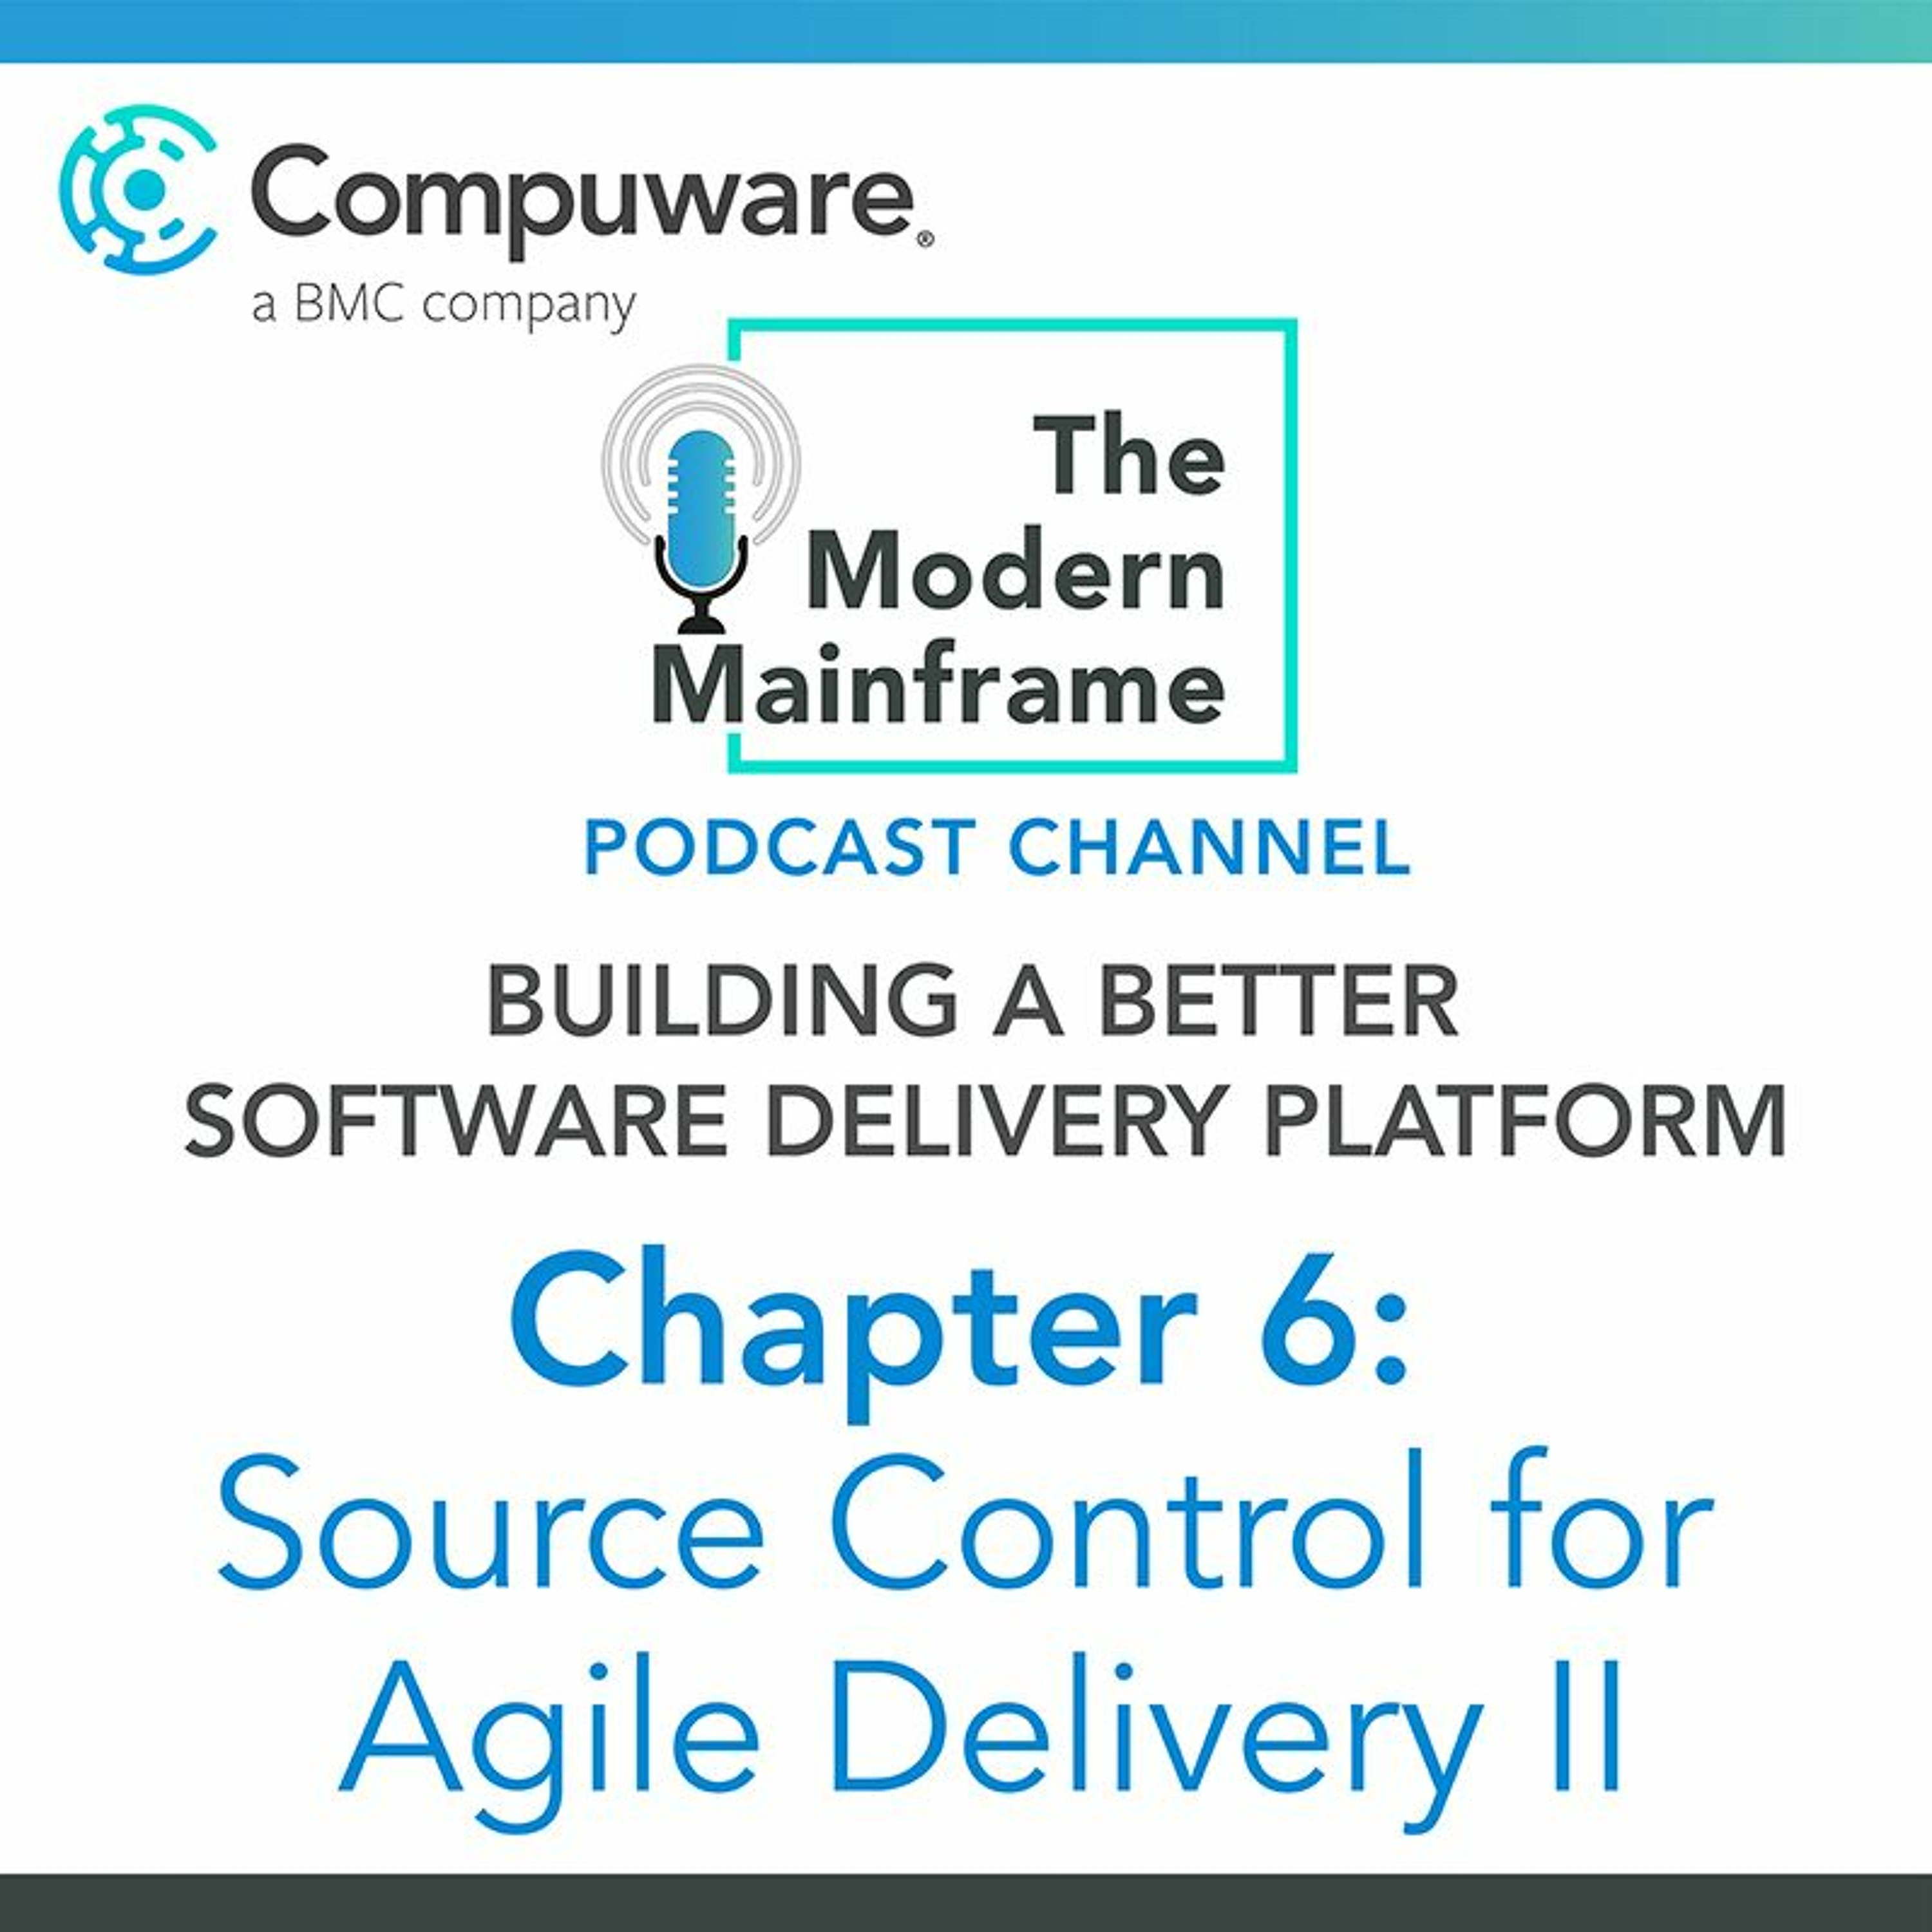 Chapter 6: Source Control For Agile Software Delivery II